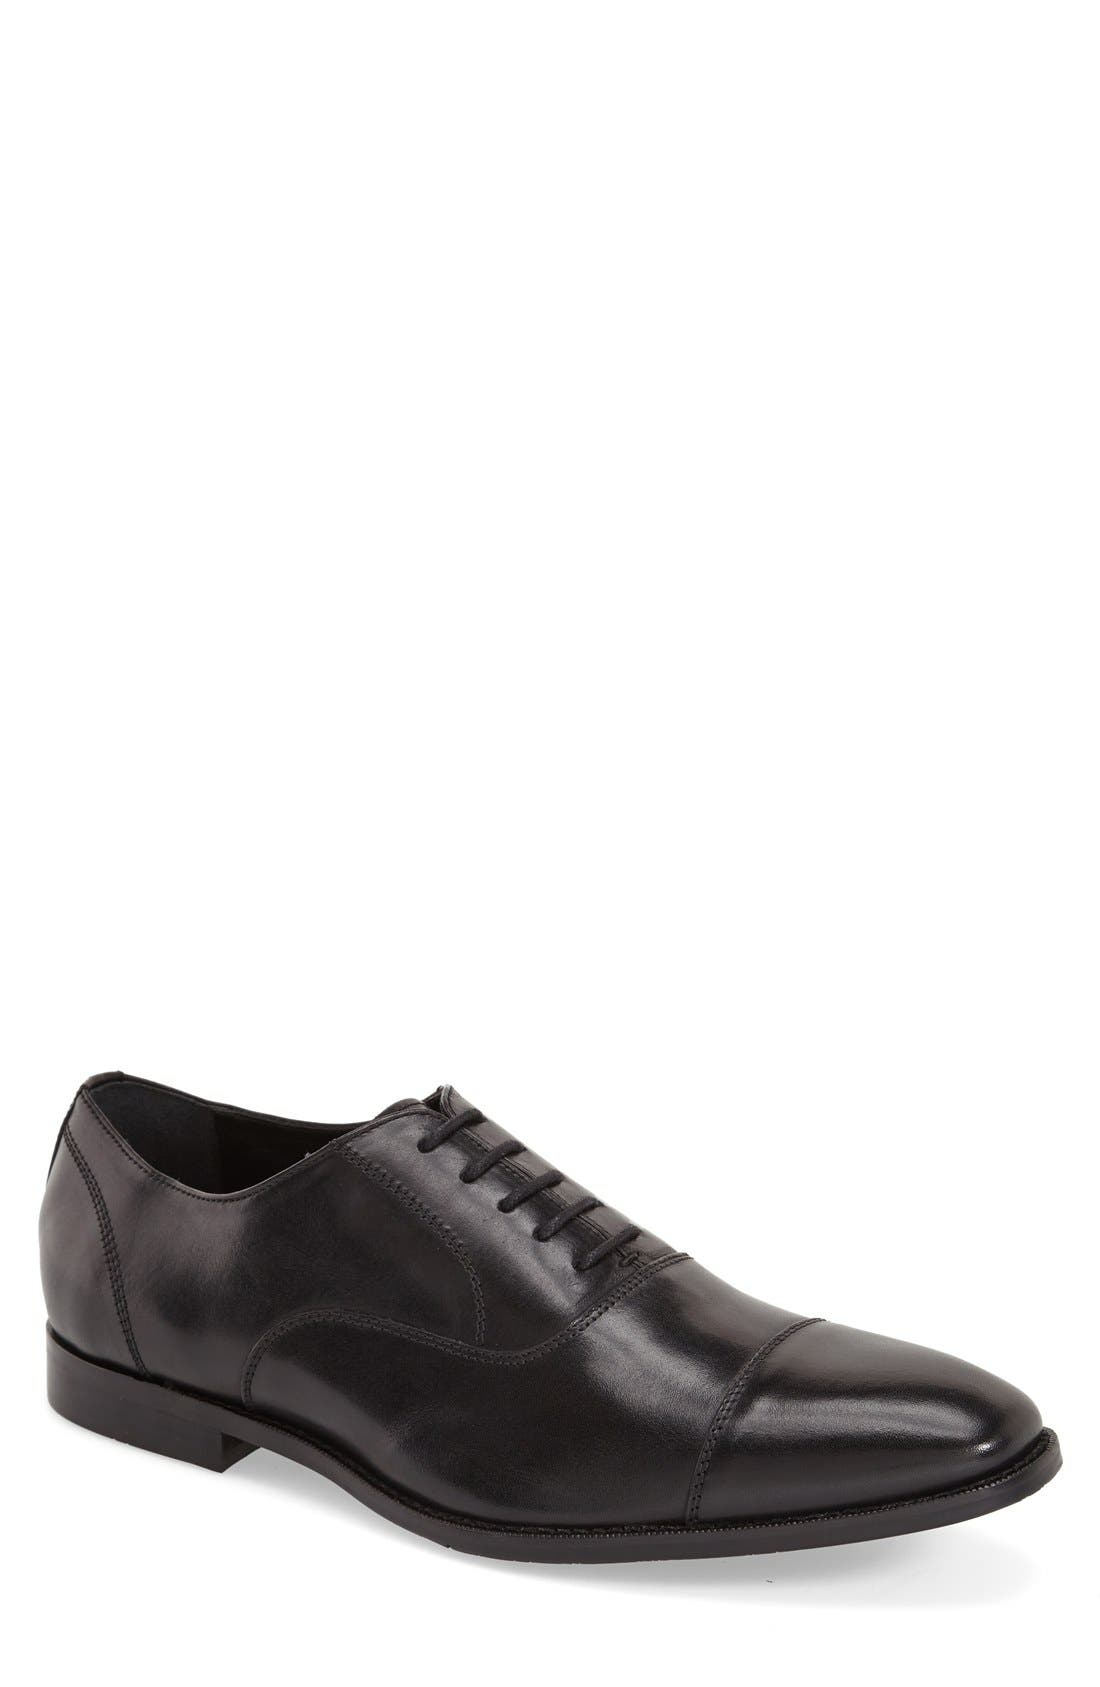 Gordon Rush 'Dillon' Cap Toe Oxford (Men)